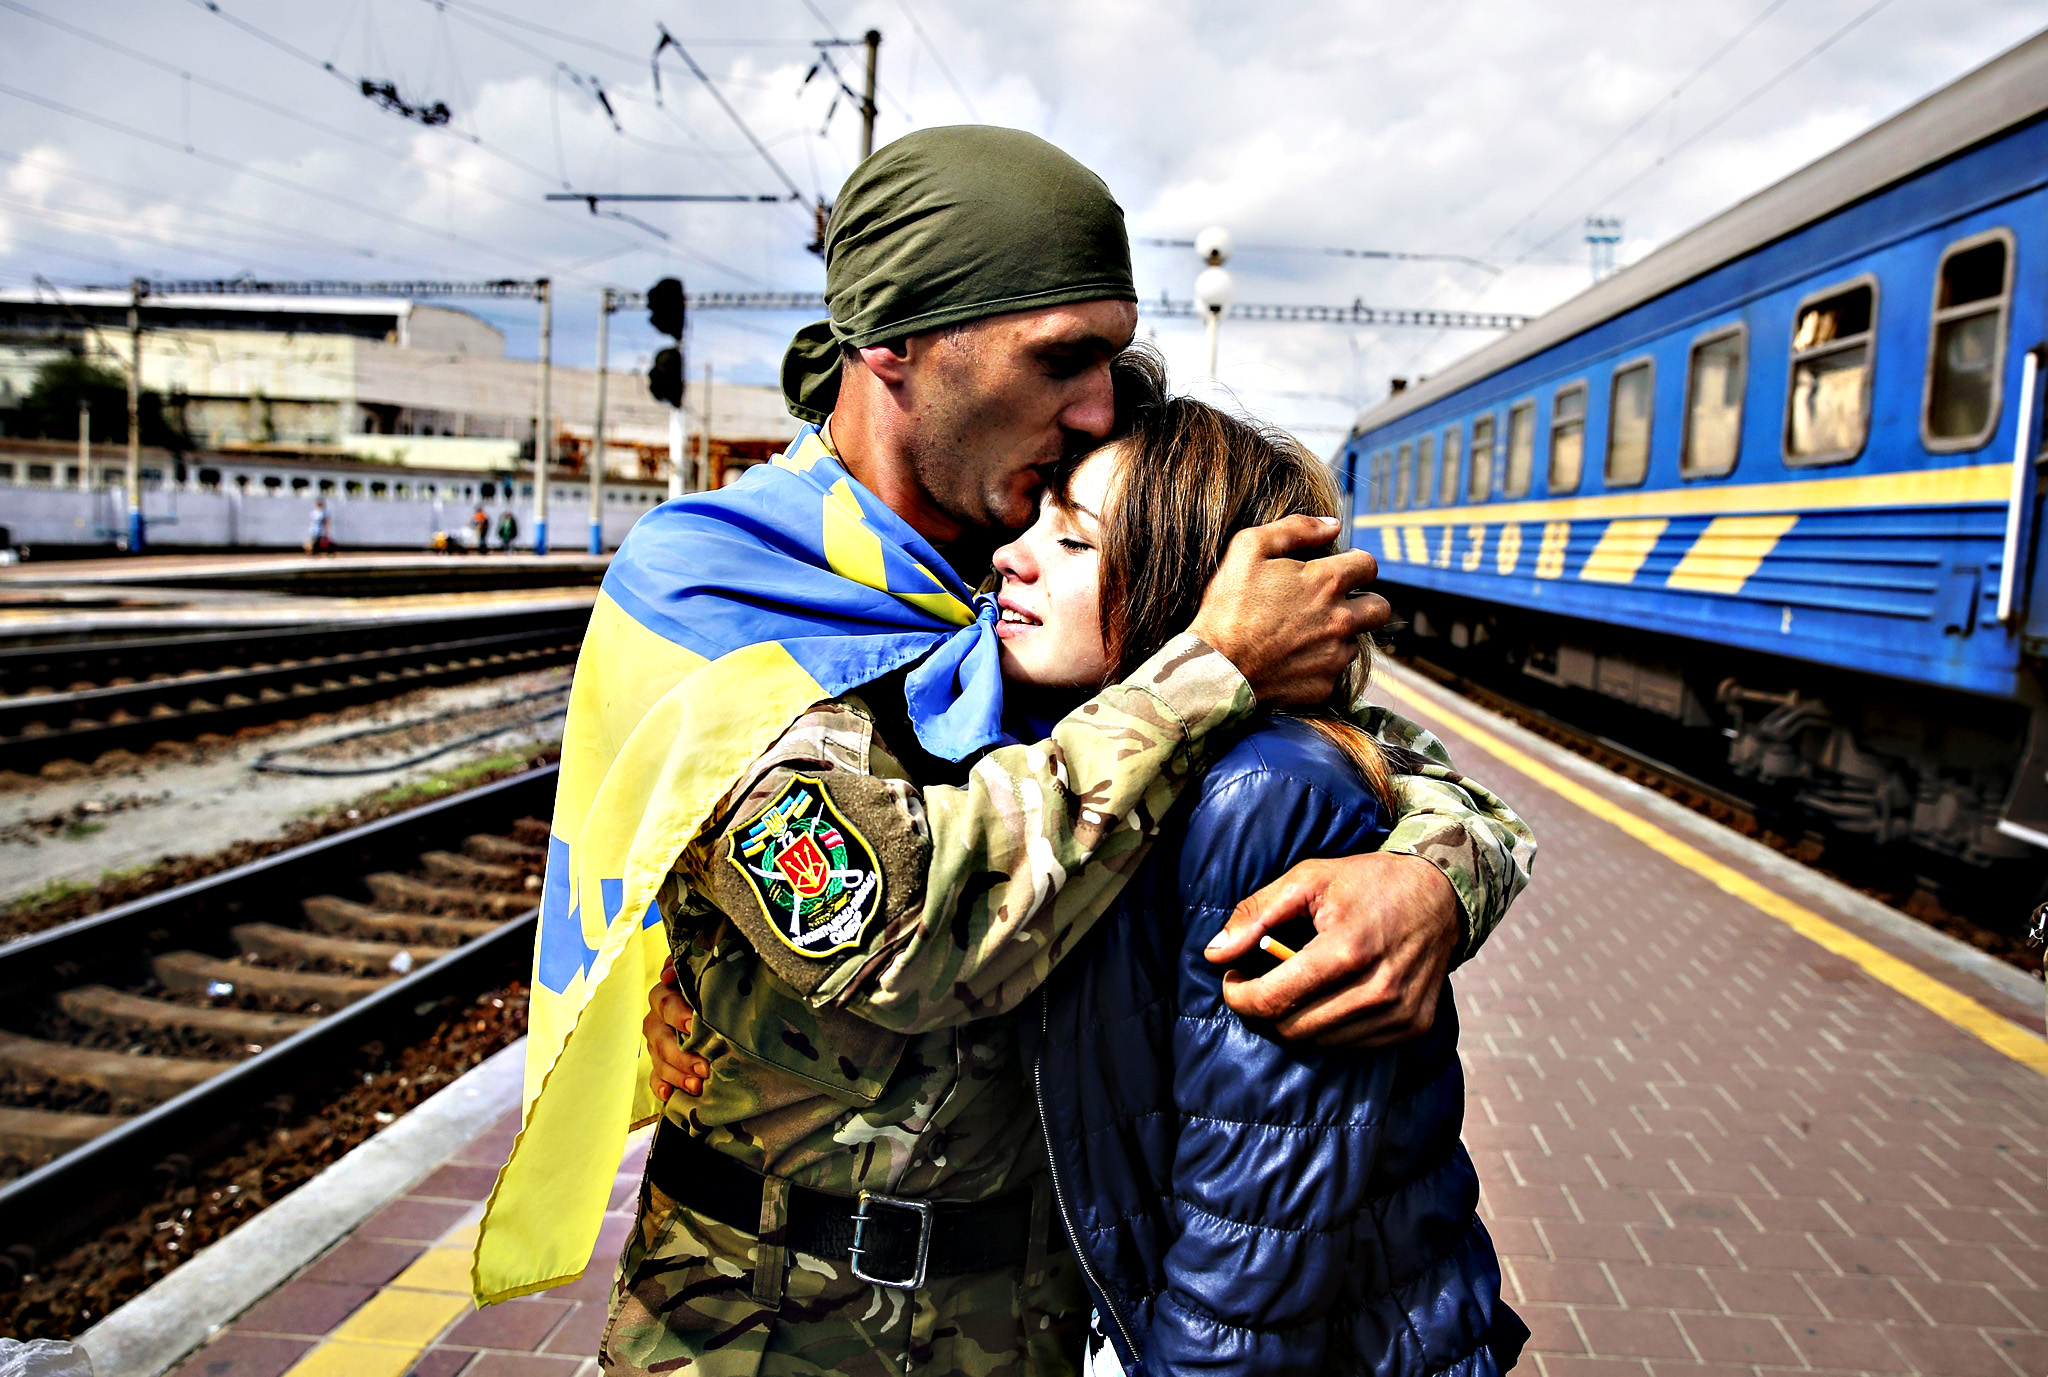 A discharged Ukrainian serviceman kisses his girlfriend on a platform of Kiev railway station as he arrived in the capital after one year fighting at the eastern-Ukrainian conflict zone 09 September 2015. Close to 8,000 civilians, Ukrainian soldiers and pro-Russian separatists have been killed in the conflict in eastern Ukraine since April last year, the UN human rights office said 8 September. The UN said the figures of at least 7,962 people killed and 17,811 wounded were conservative estimates, and the actual numbers could be far higher